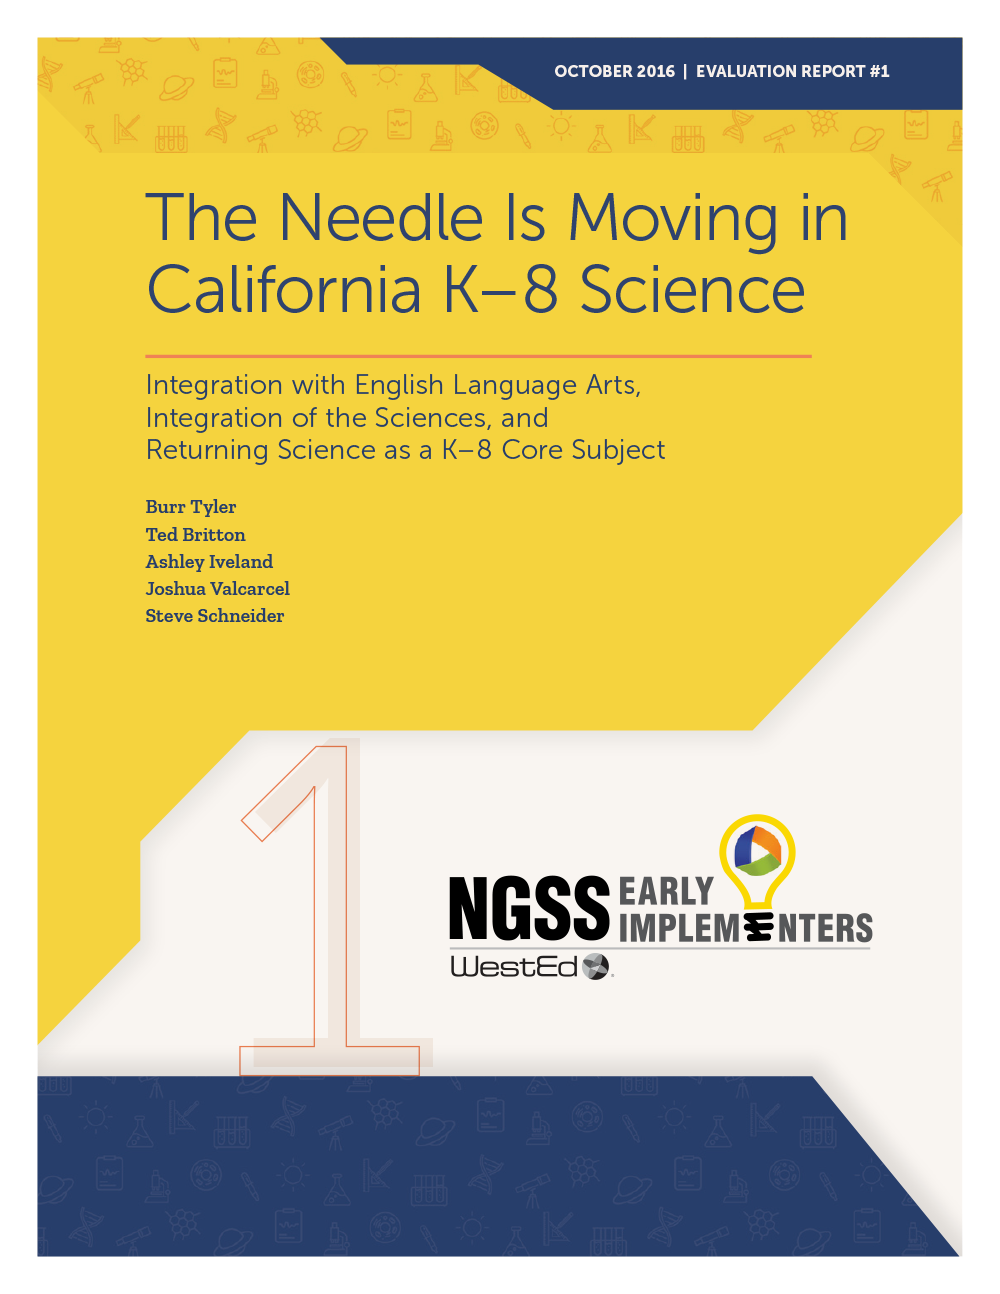 The Needle Is Moving in California K–8 Science: Integration with English Language Arts, Integration of the Sciences, and Returning Science as a K–8 Core Subject